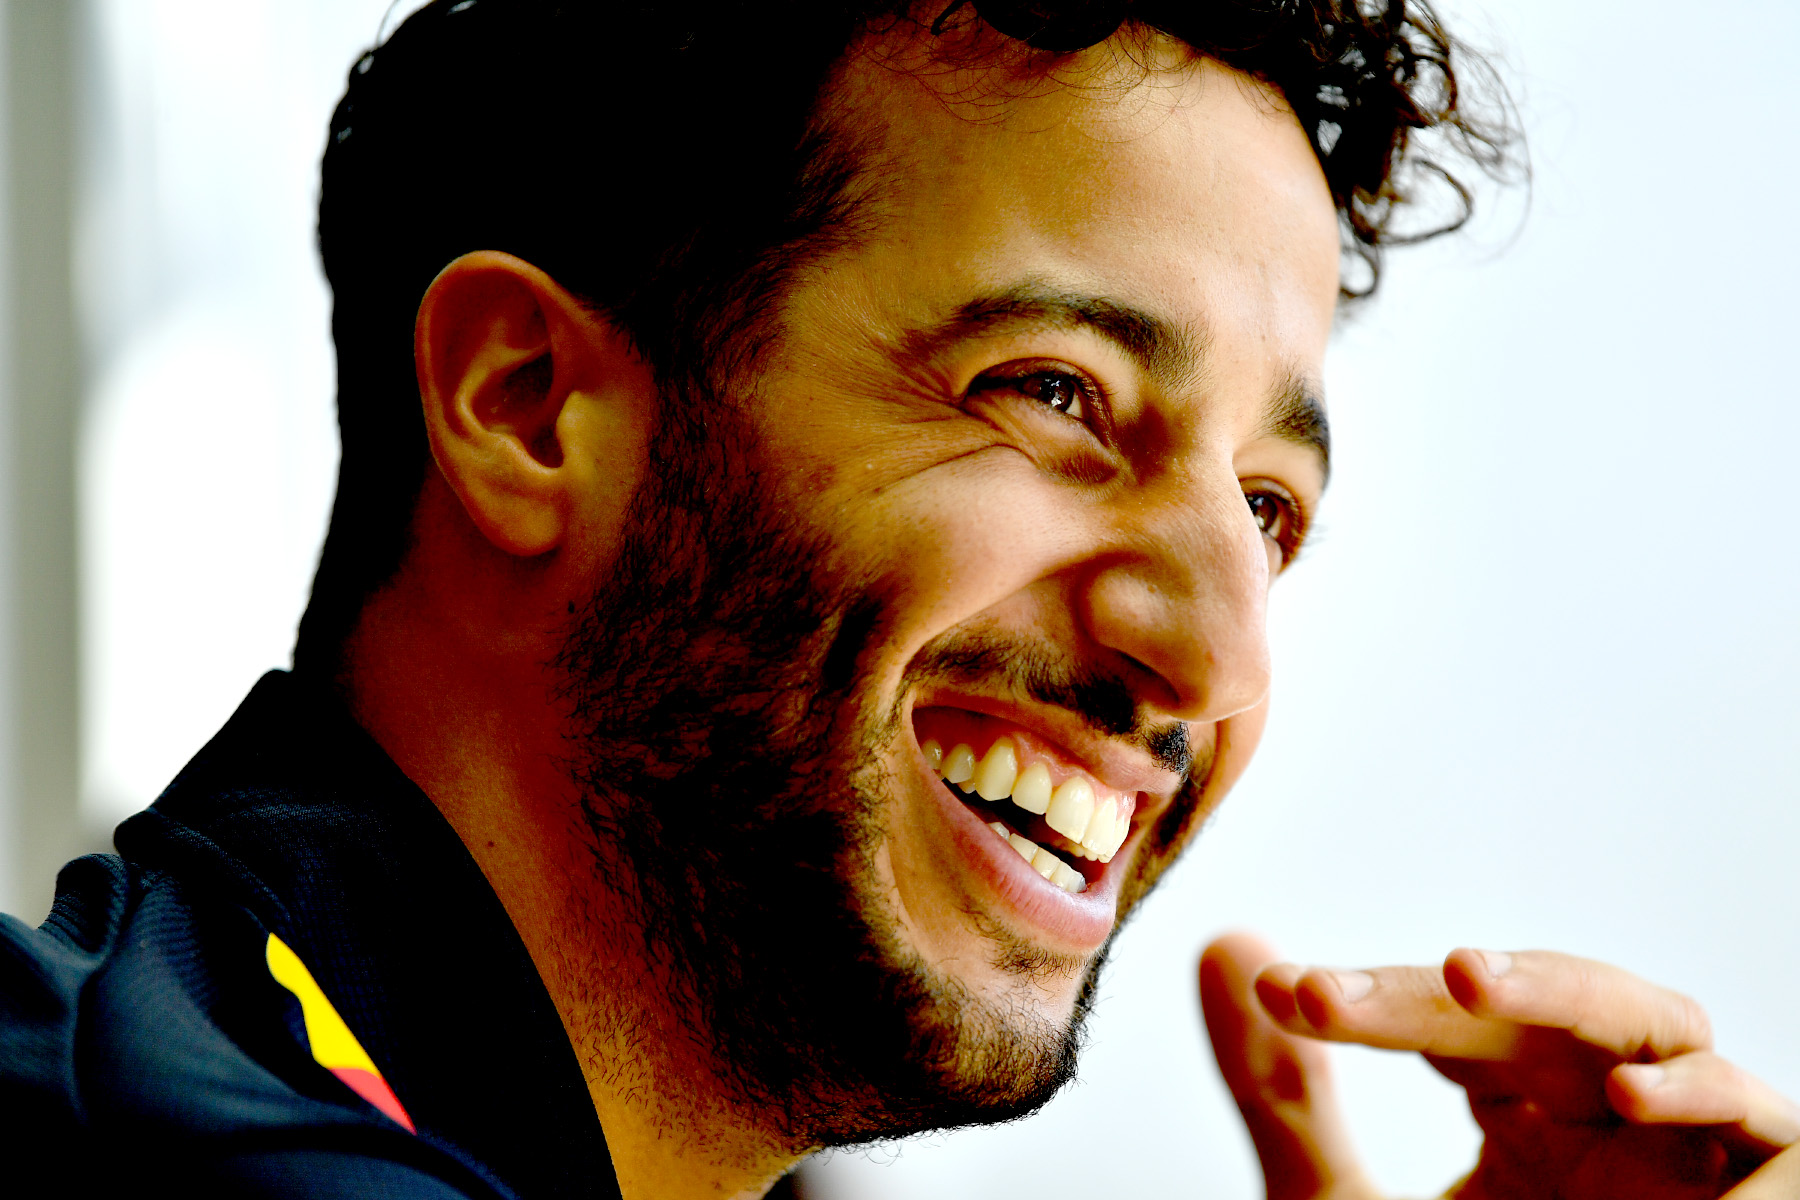 Daniel Ricciardo at the 2017 Hungarian Grand Prix.